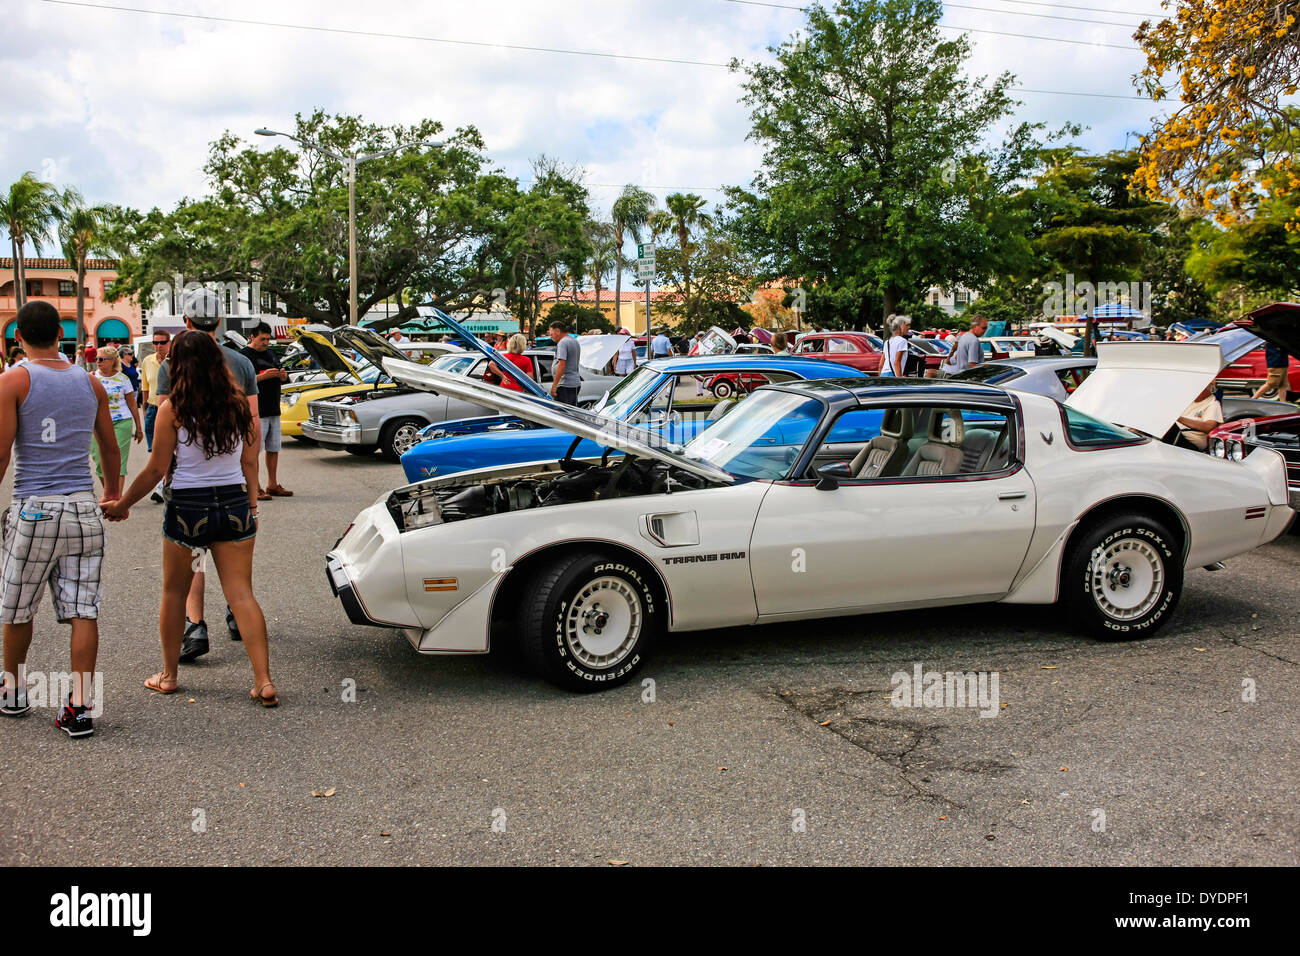 Classic Car Show In Venice Stock Photos Classic Car Show In Venice - Car show venice florida